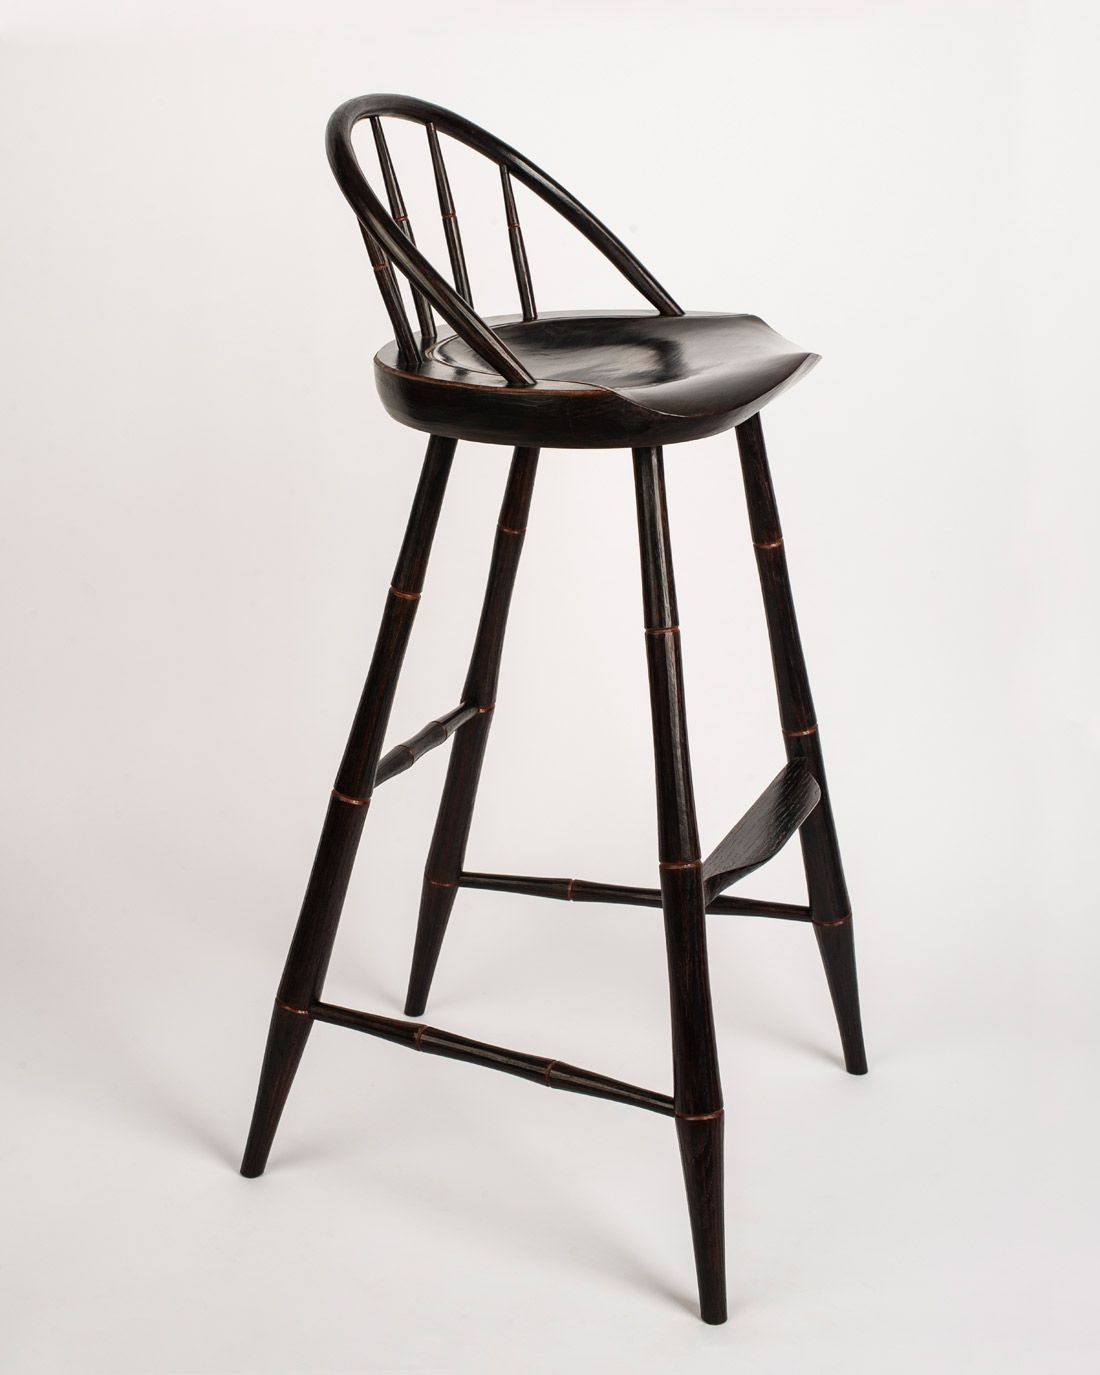 Windsor Bar Stools Windsor Bar Stools With Arms Windsor Bar Stools Black Windsor Bar Stools Malaga Windsor Bar Bar Stools Bar Furniture Bar Stools For Sale